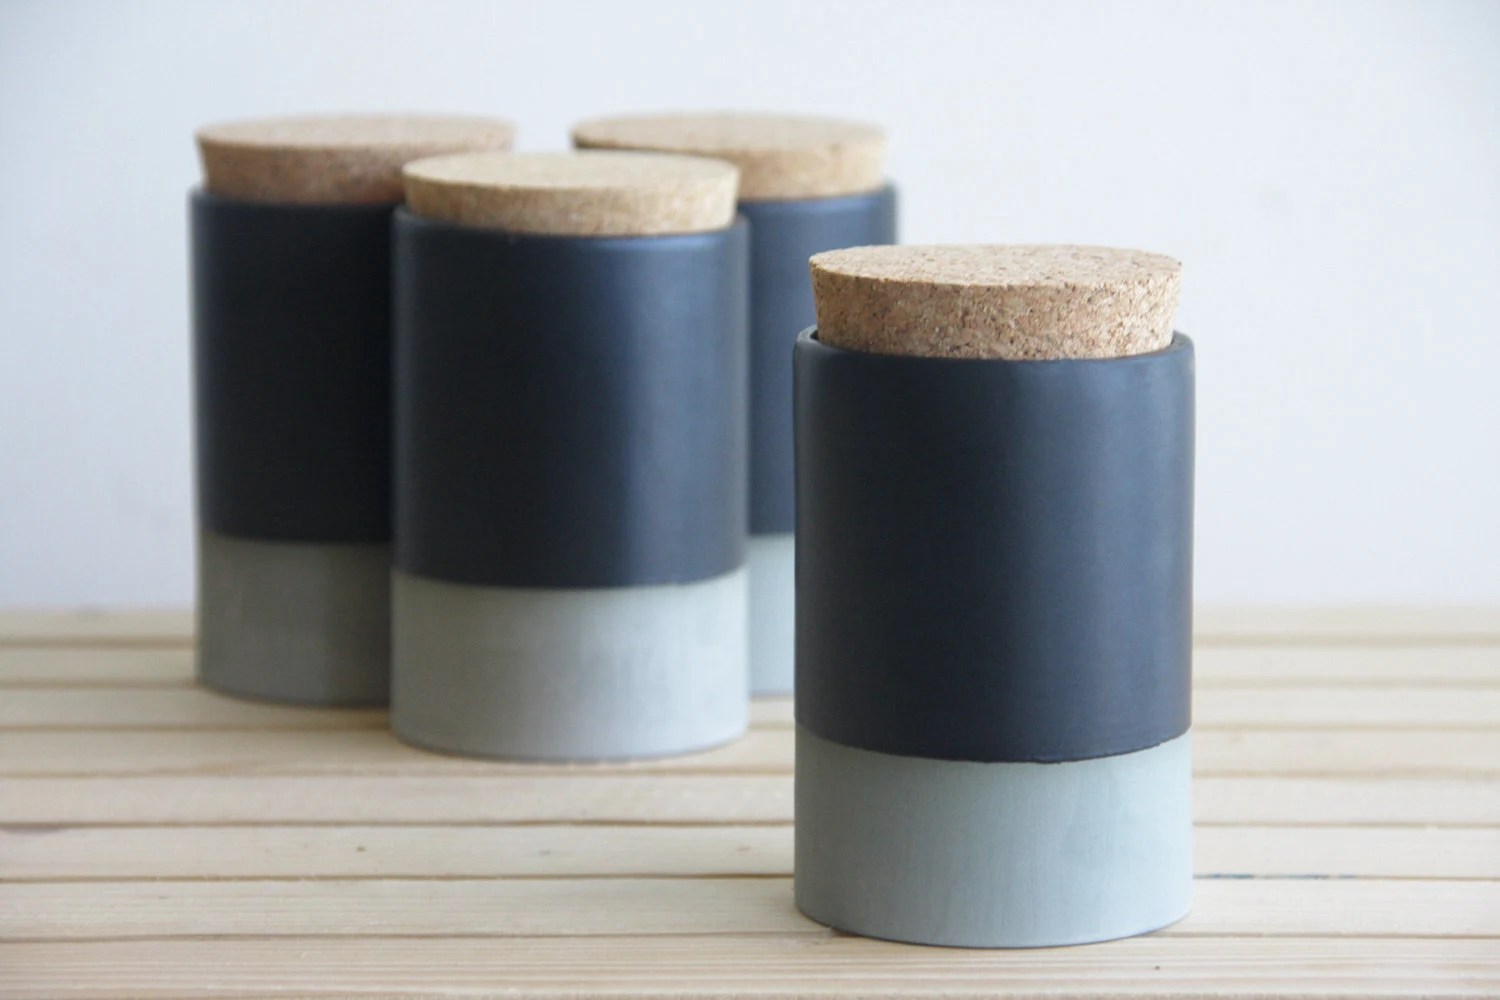 Small Ceramic Jars With Lids Small Ceramic Jar With Cork Lid In Gray With Black Matte